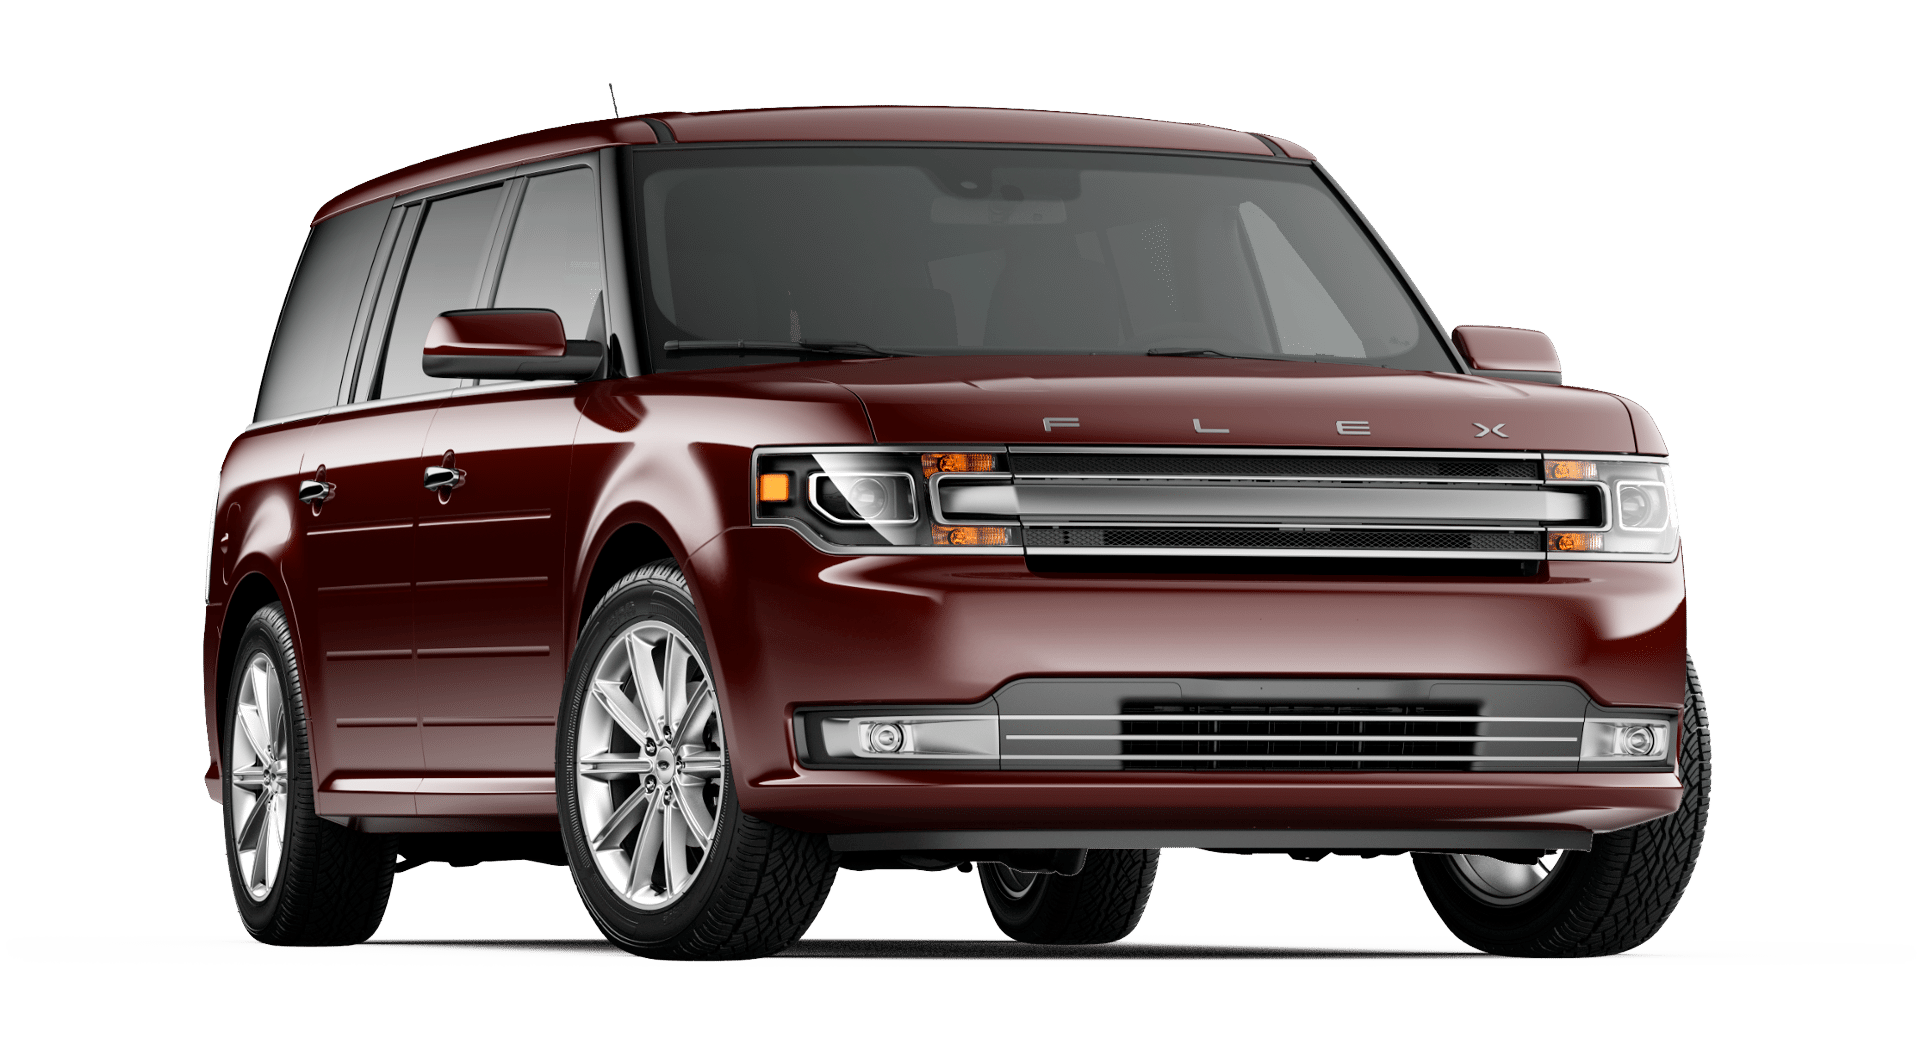 2018 Ford Flex Limited - Shown